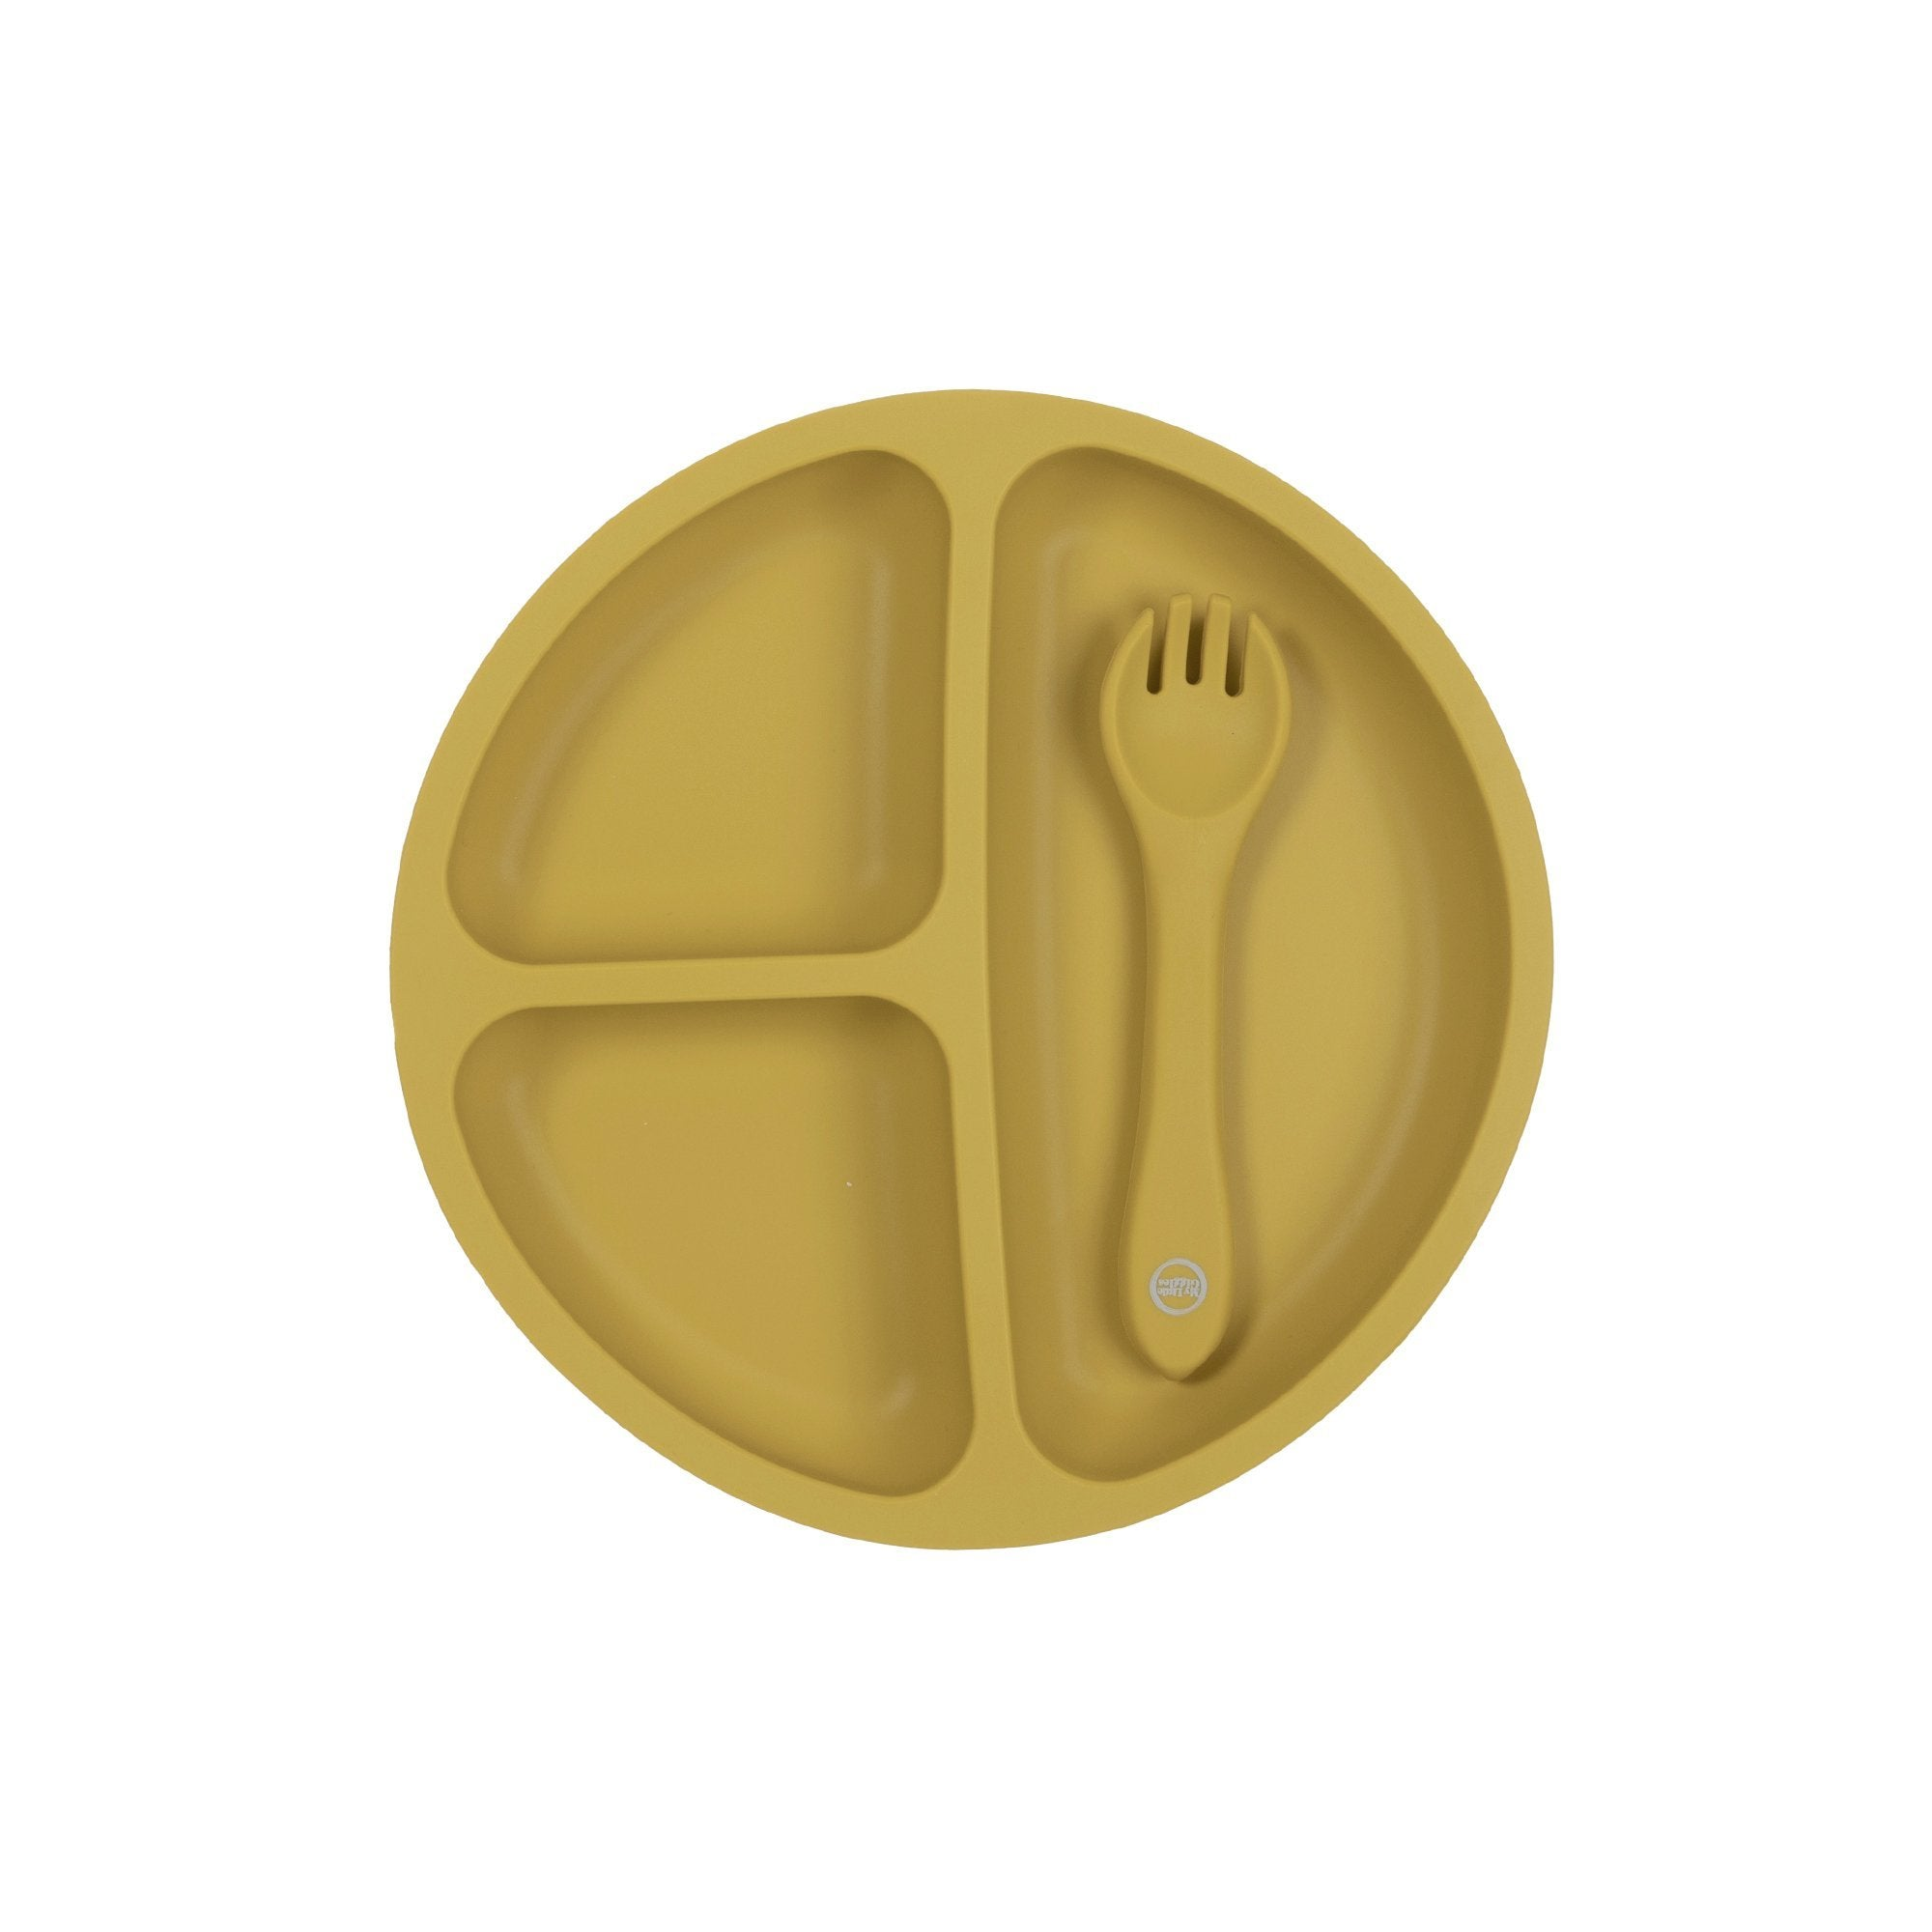 Mustard - Suction Plate & Spoon Set - My Little Giggles